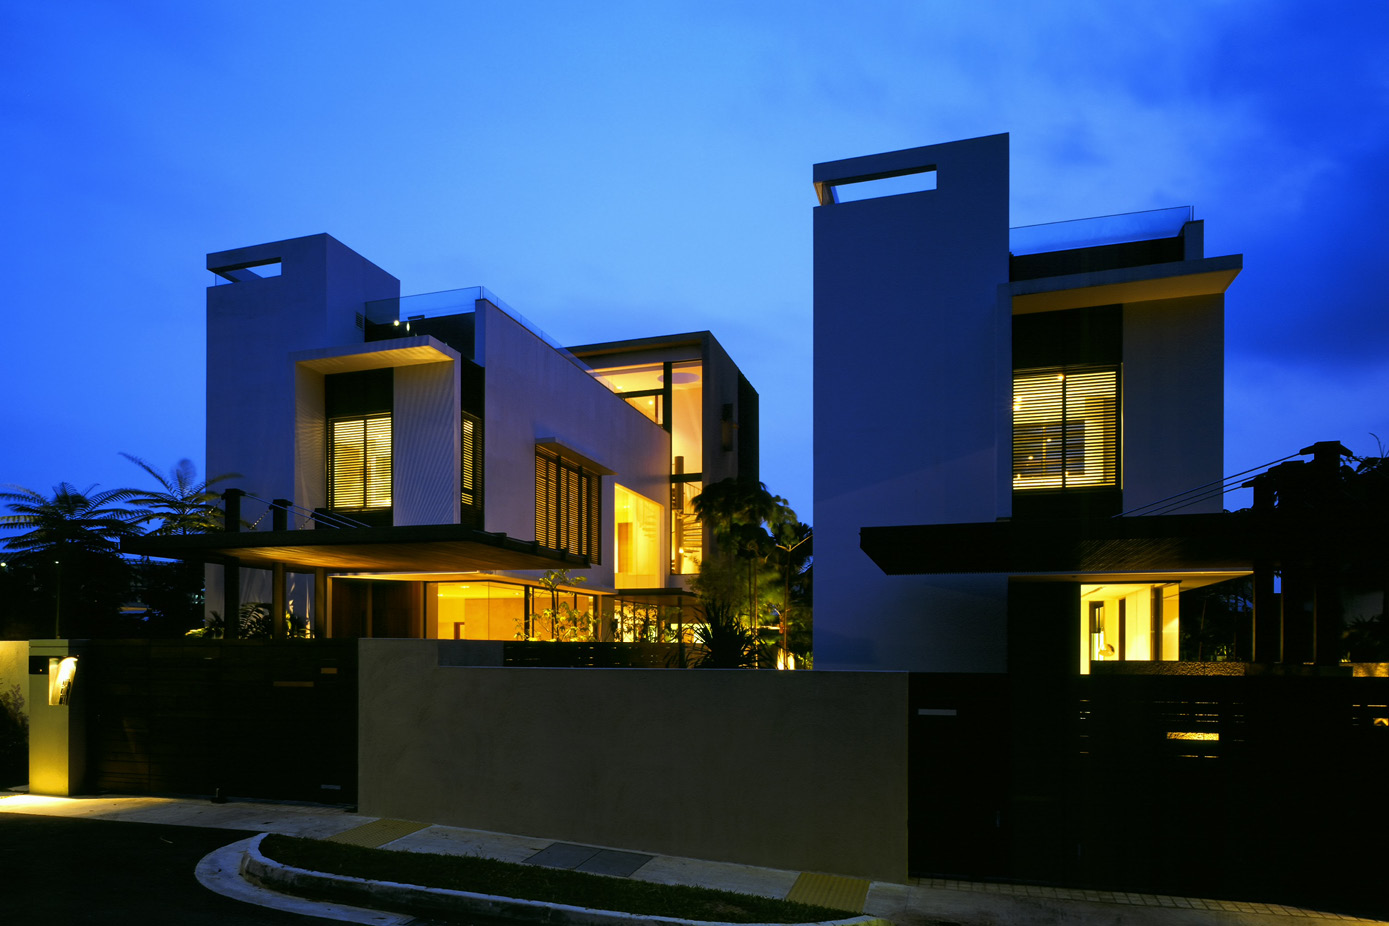 TWIN HOUSE_TG_010.jpg